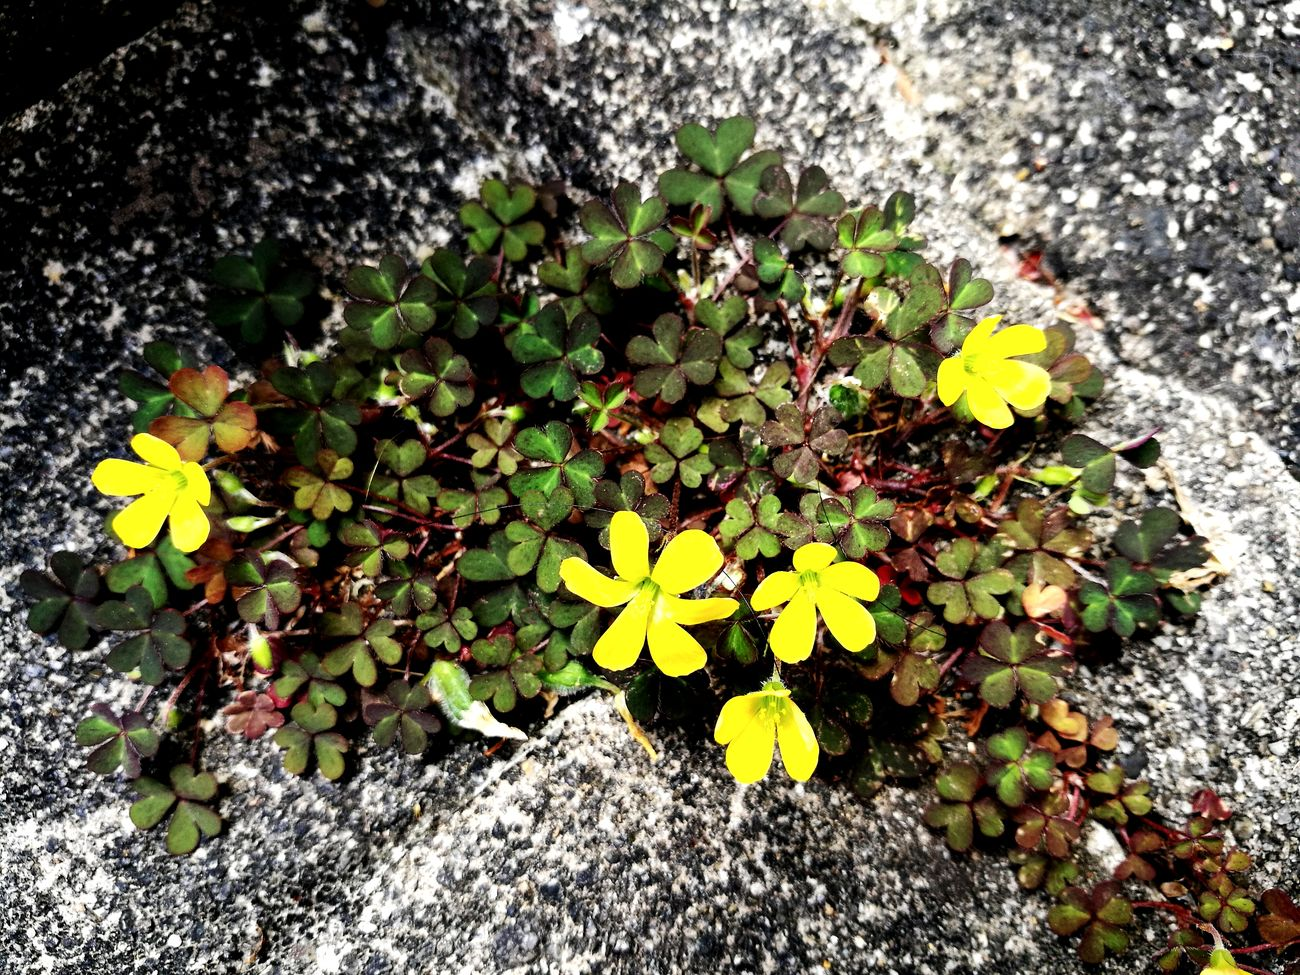 Flower Growth Yellow Plant Fragility Petal Nature High Angle View Flower Head Outdoors Day Beauty In Nature No People Leaf Freshness Blooming Close-up